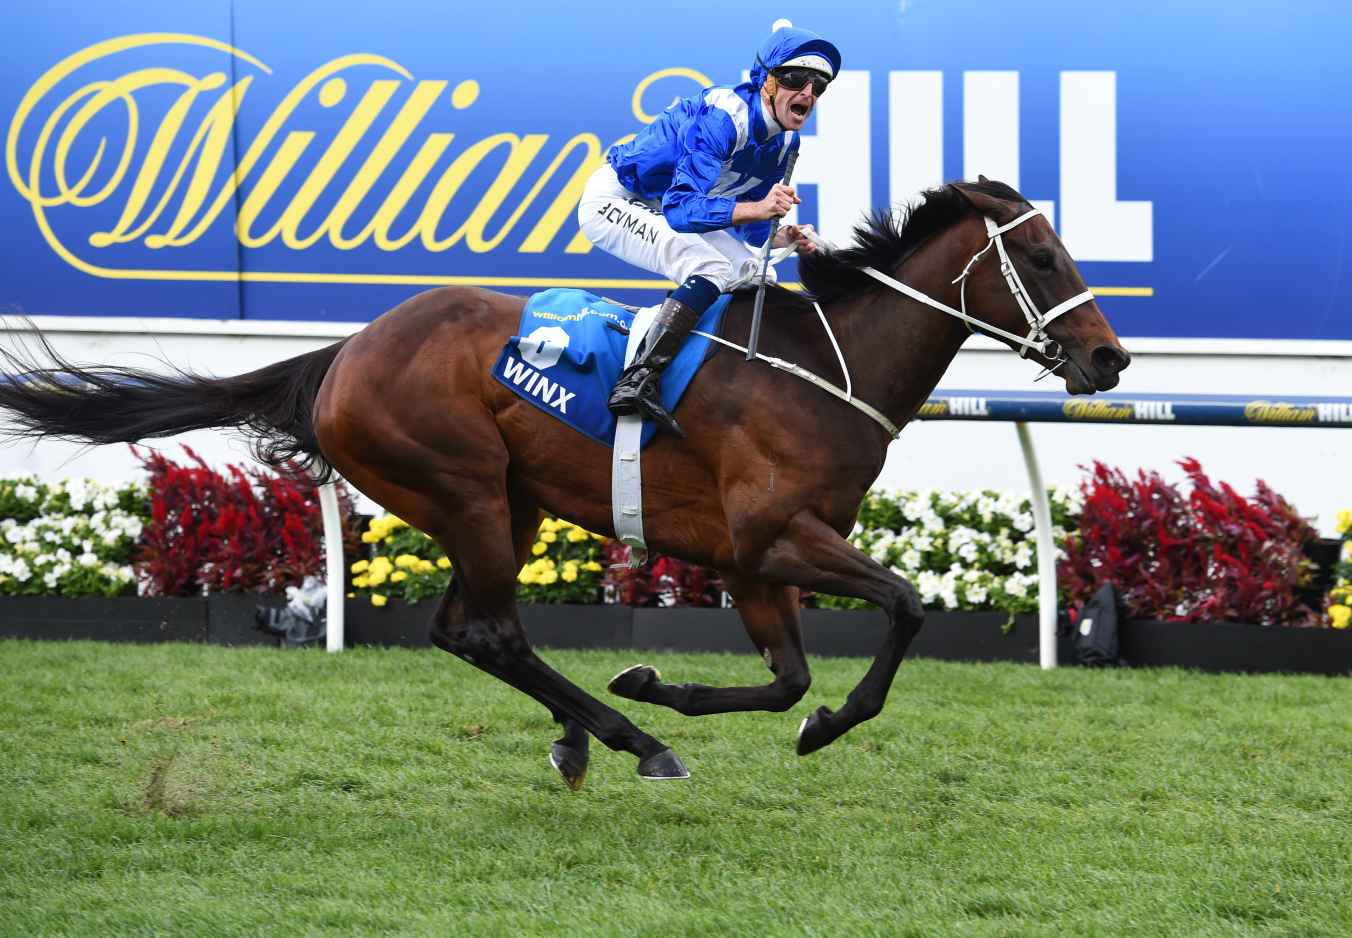 Hugh Bowman riding Winx during Cox Plate Day